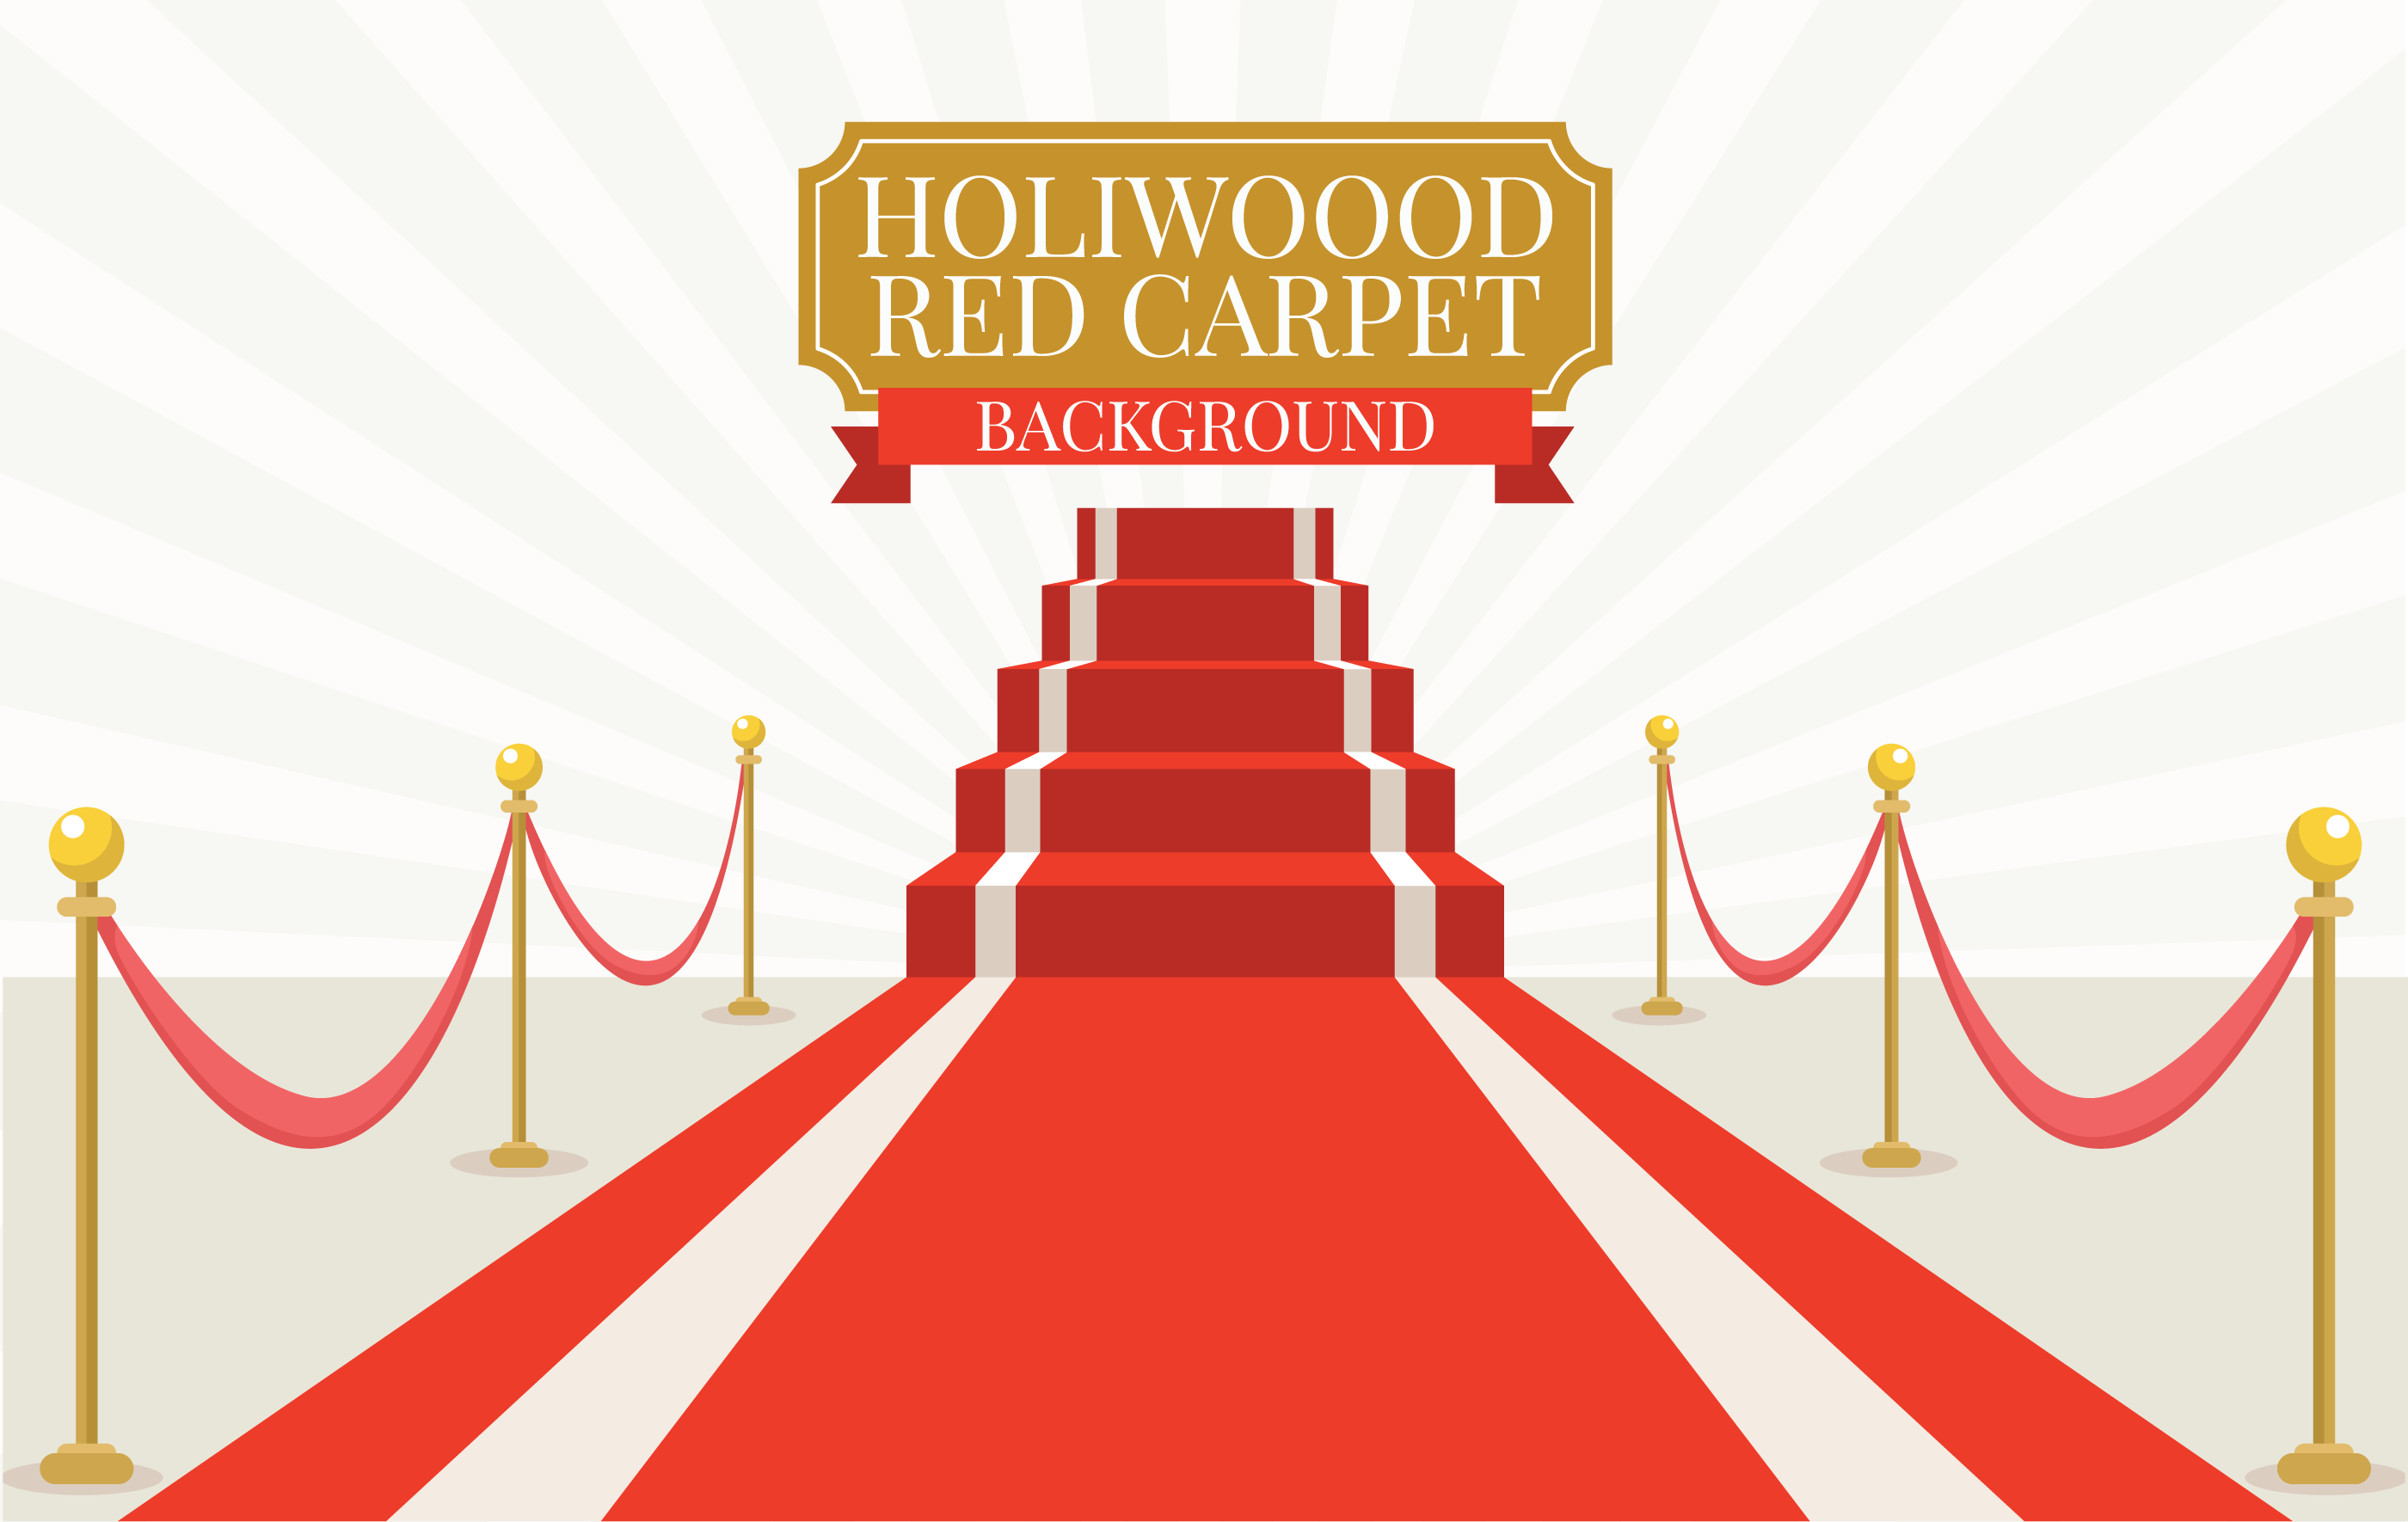 Hollywood Red Carpet - Download Free Vector Art, Stock ...